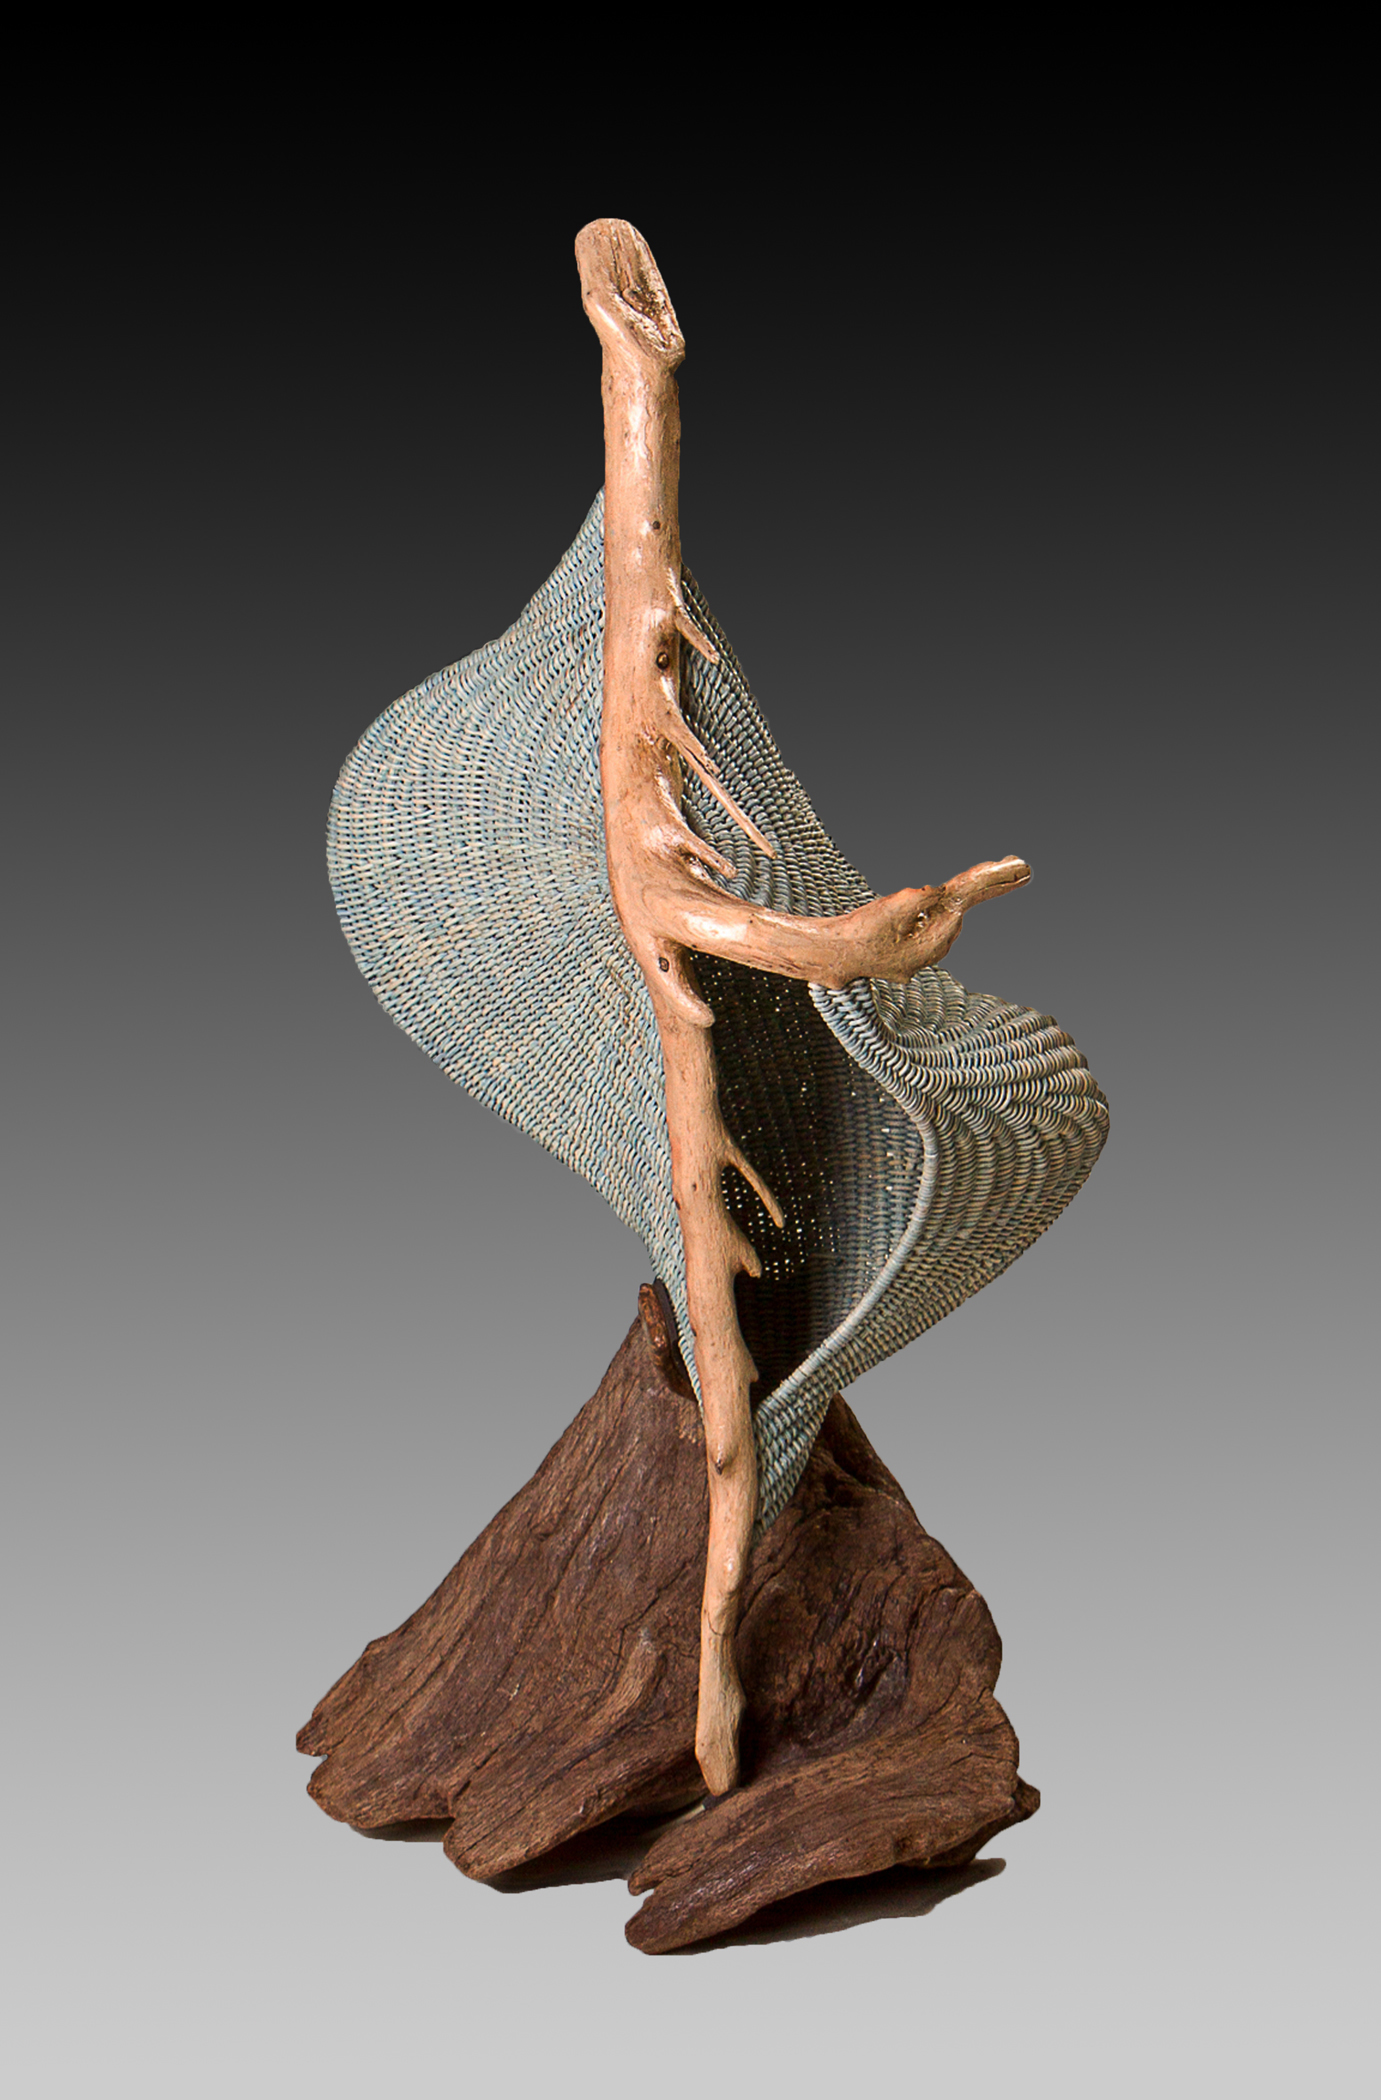 Tidal Arabesque woven sculpture by Deborah Smith